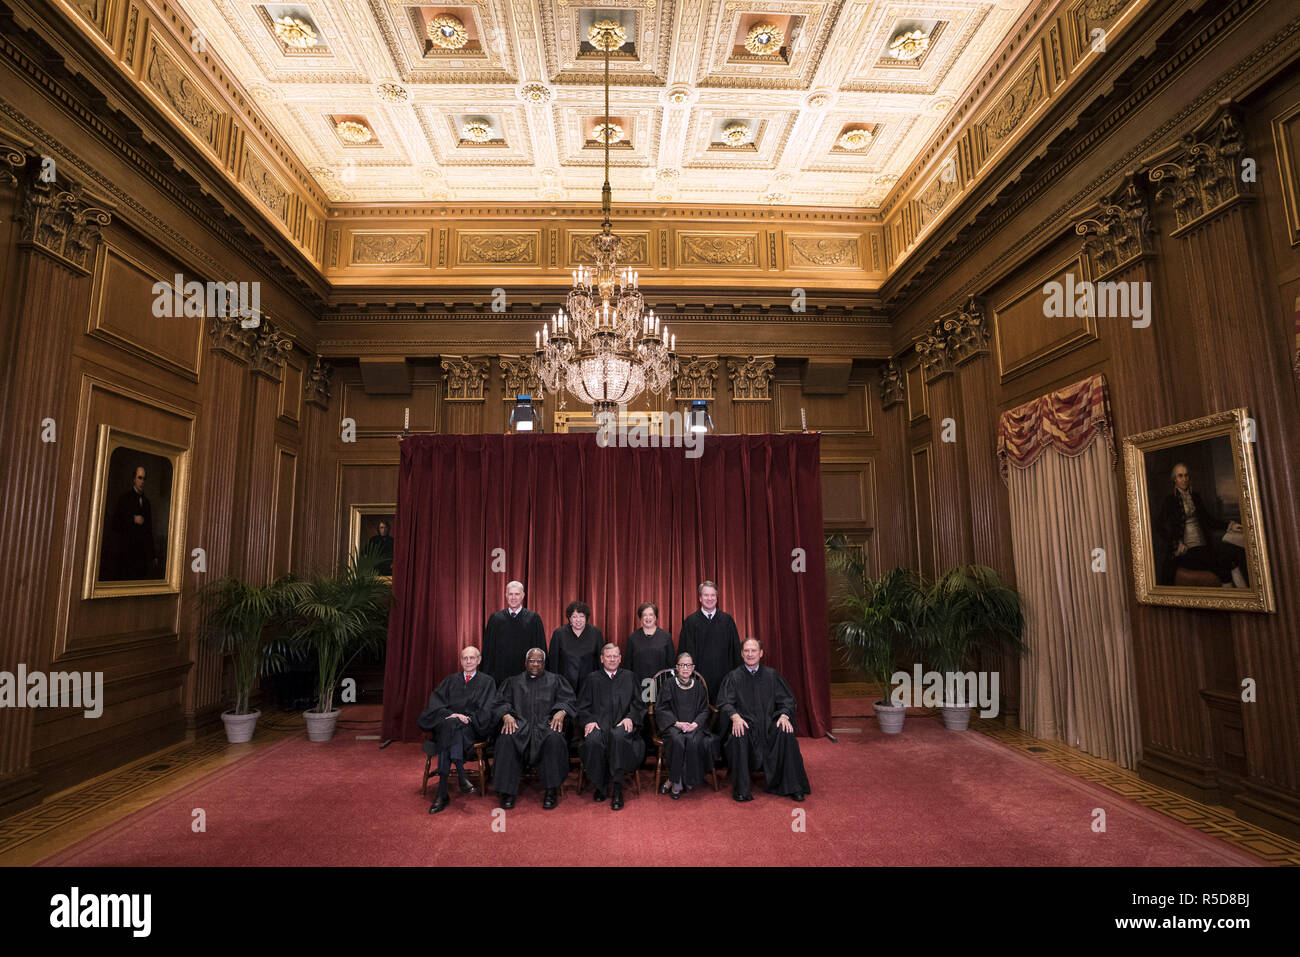 Washington, District of Columbia, USA. 30th Nov, 2018. The Supreme Court Justices pose for their official group portrait in the Supreme Court on November 30, 2018 in Washington, DC Seated from left: Associate Justice Stephen Breyer, Associate Justice Clarence Thomas, Chief Justice John G. Roberts, Associate Justice Ruth Bader Ginsburg and Associate Justice Samuel Alito, Jr. Standing behind from left: Associate Justice Neil Gorsuch, Associate Justice Sonia Sotomayor, Associate Justice Elena Kagan and Associate Justice Brett M. Kavanaugh Credit: Kevin Dietsch/CNP/ZUMA Wire/Alamy Live News - Stock Image